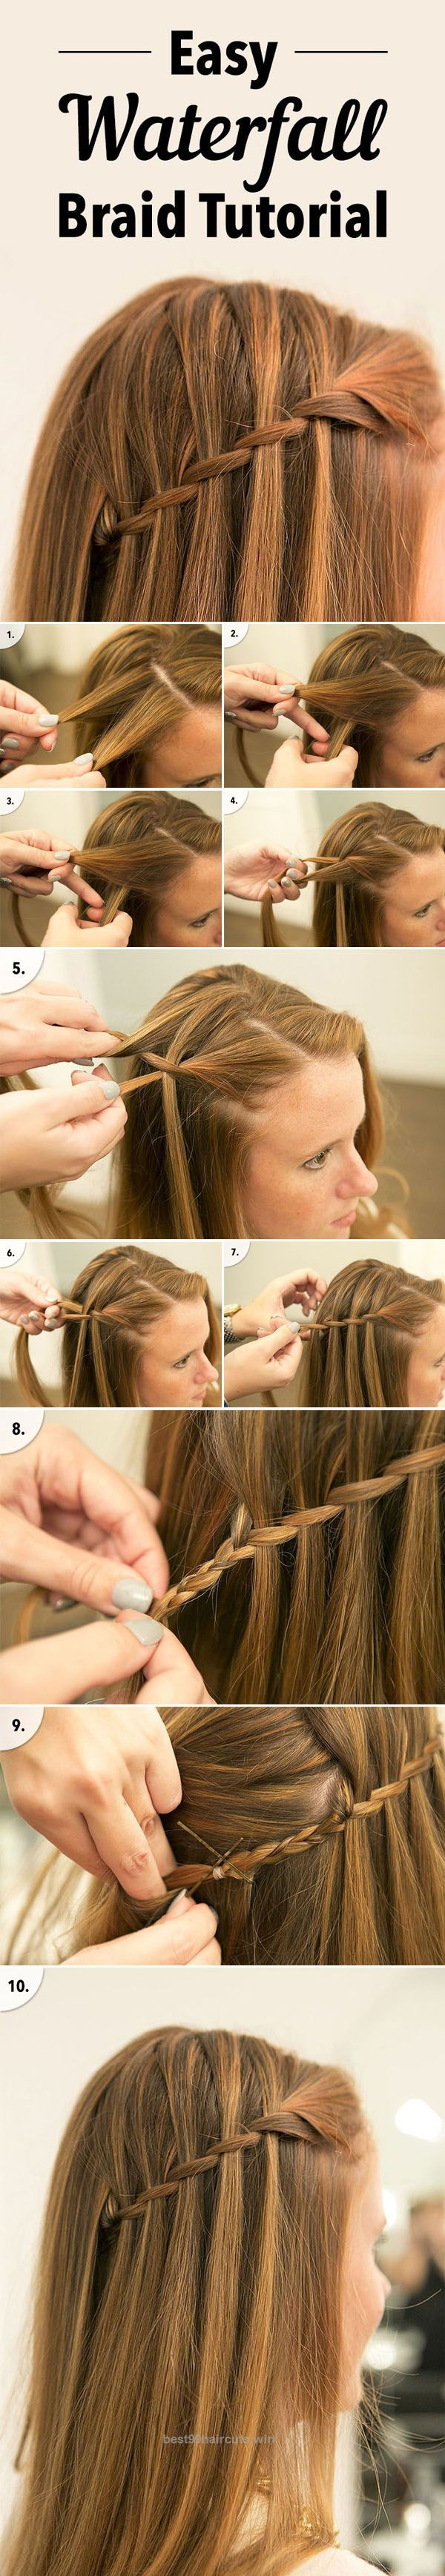 Check it out easy waterfall braid tutorial for diy wedding hairstyle ideas  The post  easy waterfall braid tutorial for diy wedding hairstyle ideas…  appeared first on  99Haircuts .